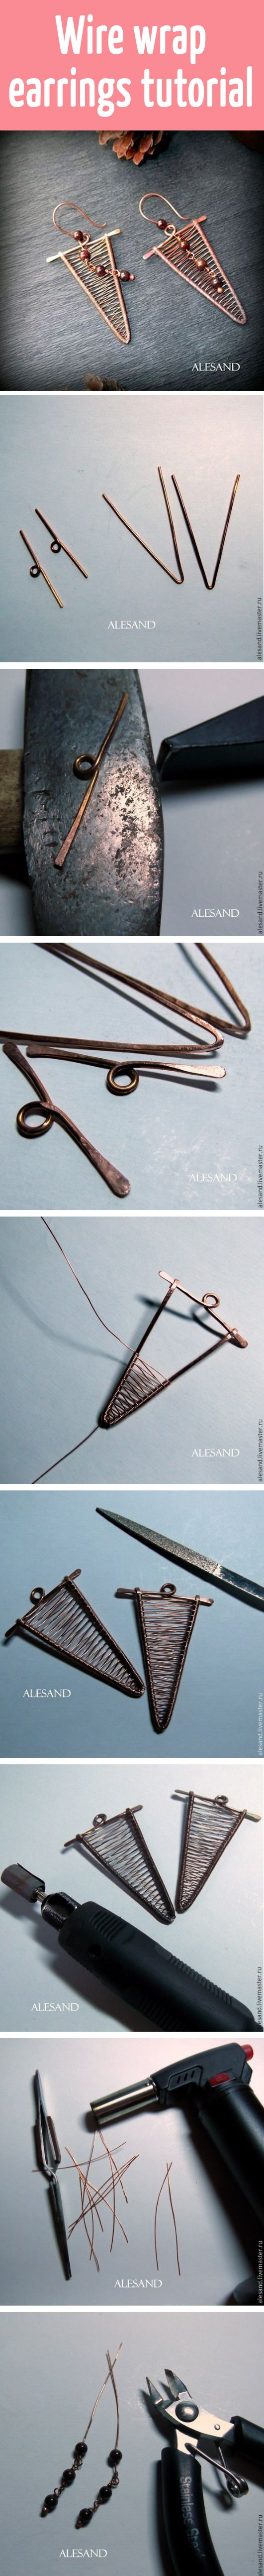 Wire wrap earrings tutorial